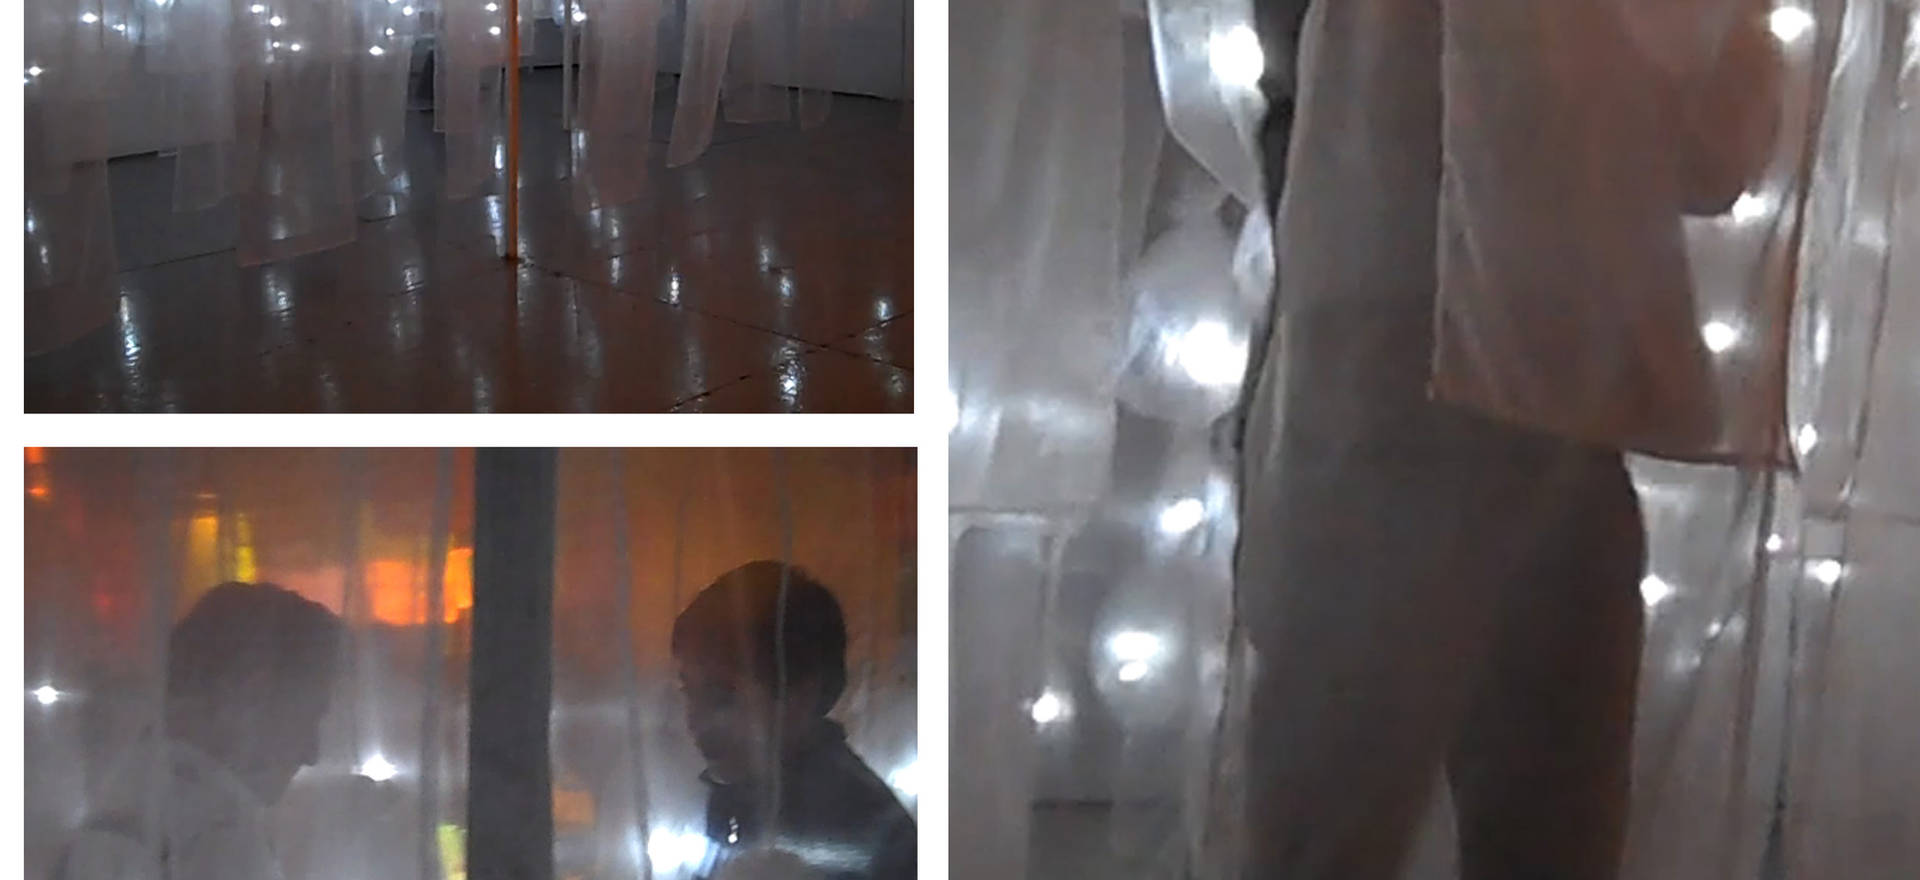 Return from the Mictlan, 2010 Penetrable installation. Textile, lighting system and audio. Presented at the National Center for the Arts, Mexico City, Mexico. 29.52 x 19.68 ft. 9 x 6 m.  Audio design: Eduardo Roel.